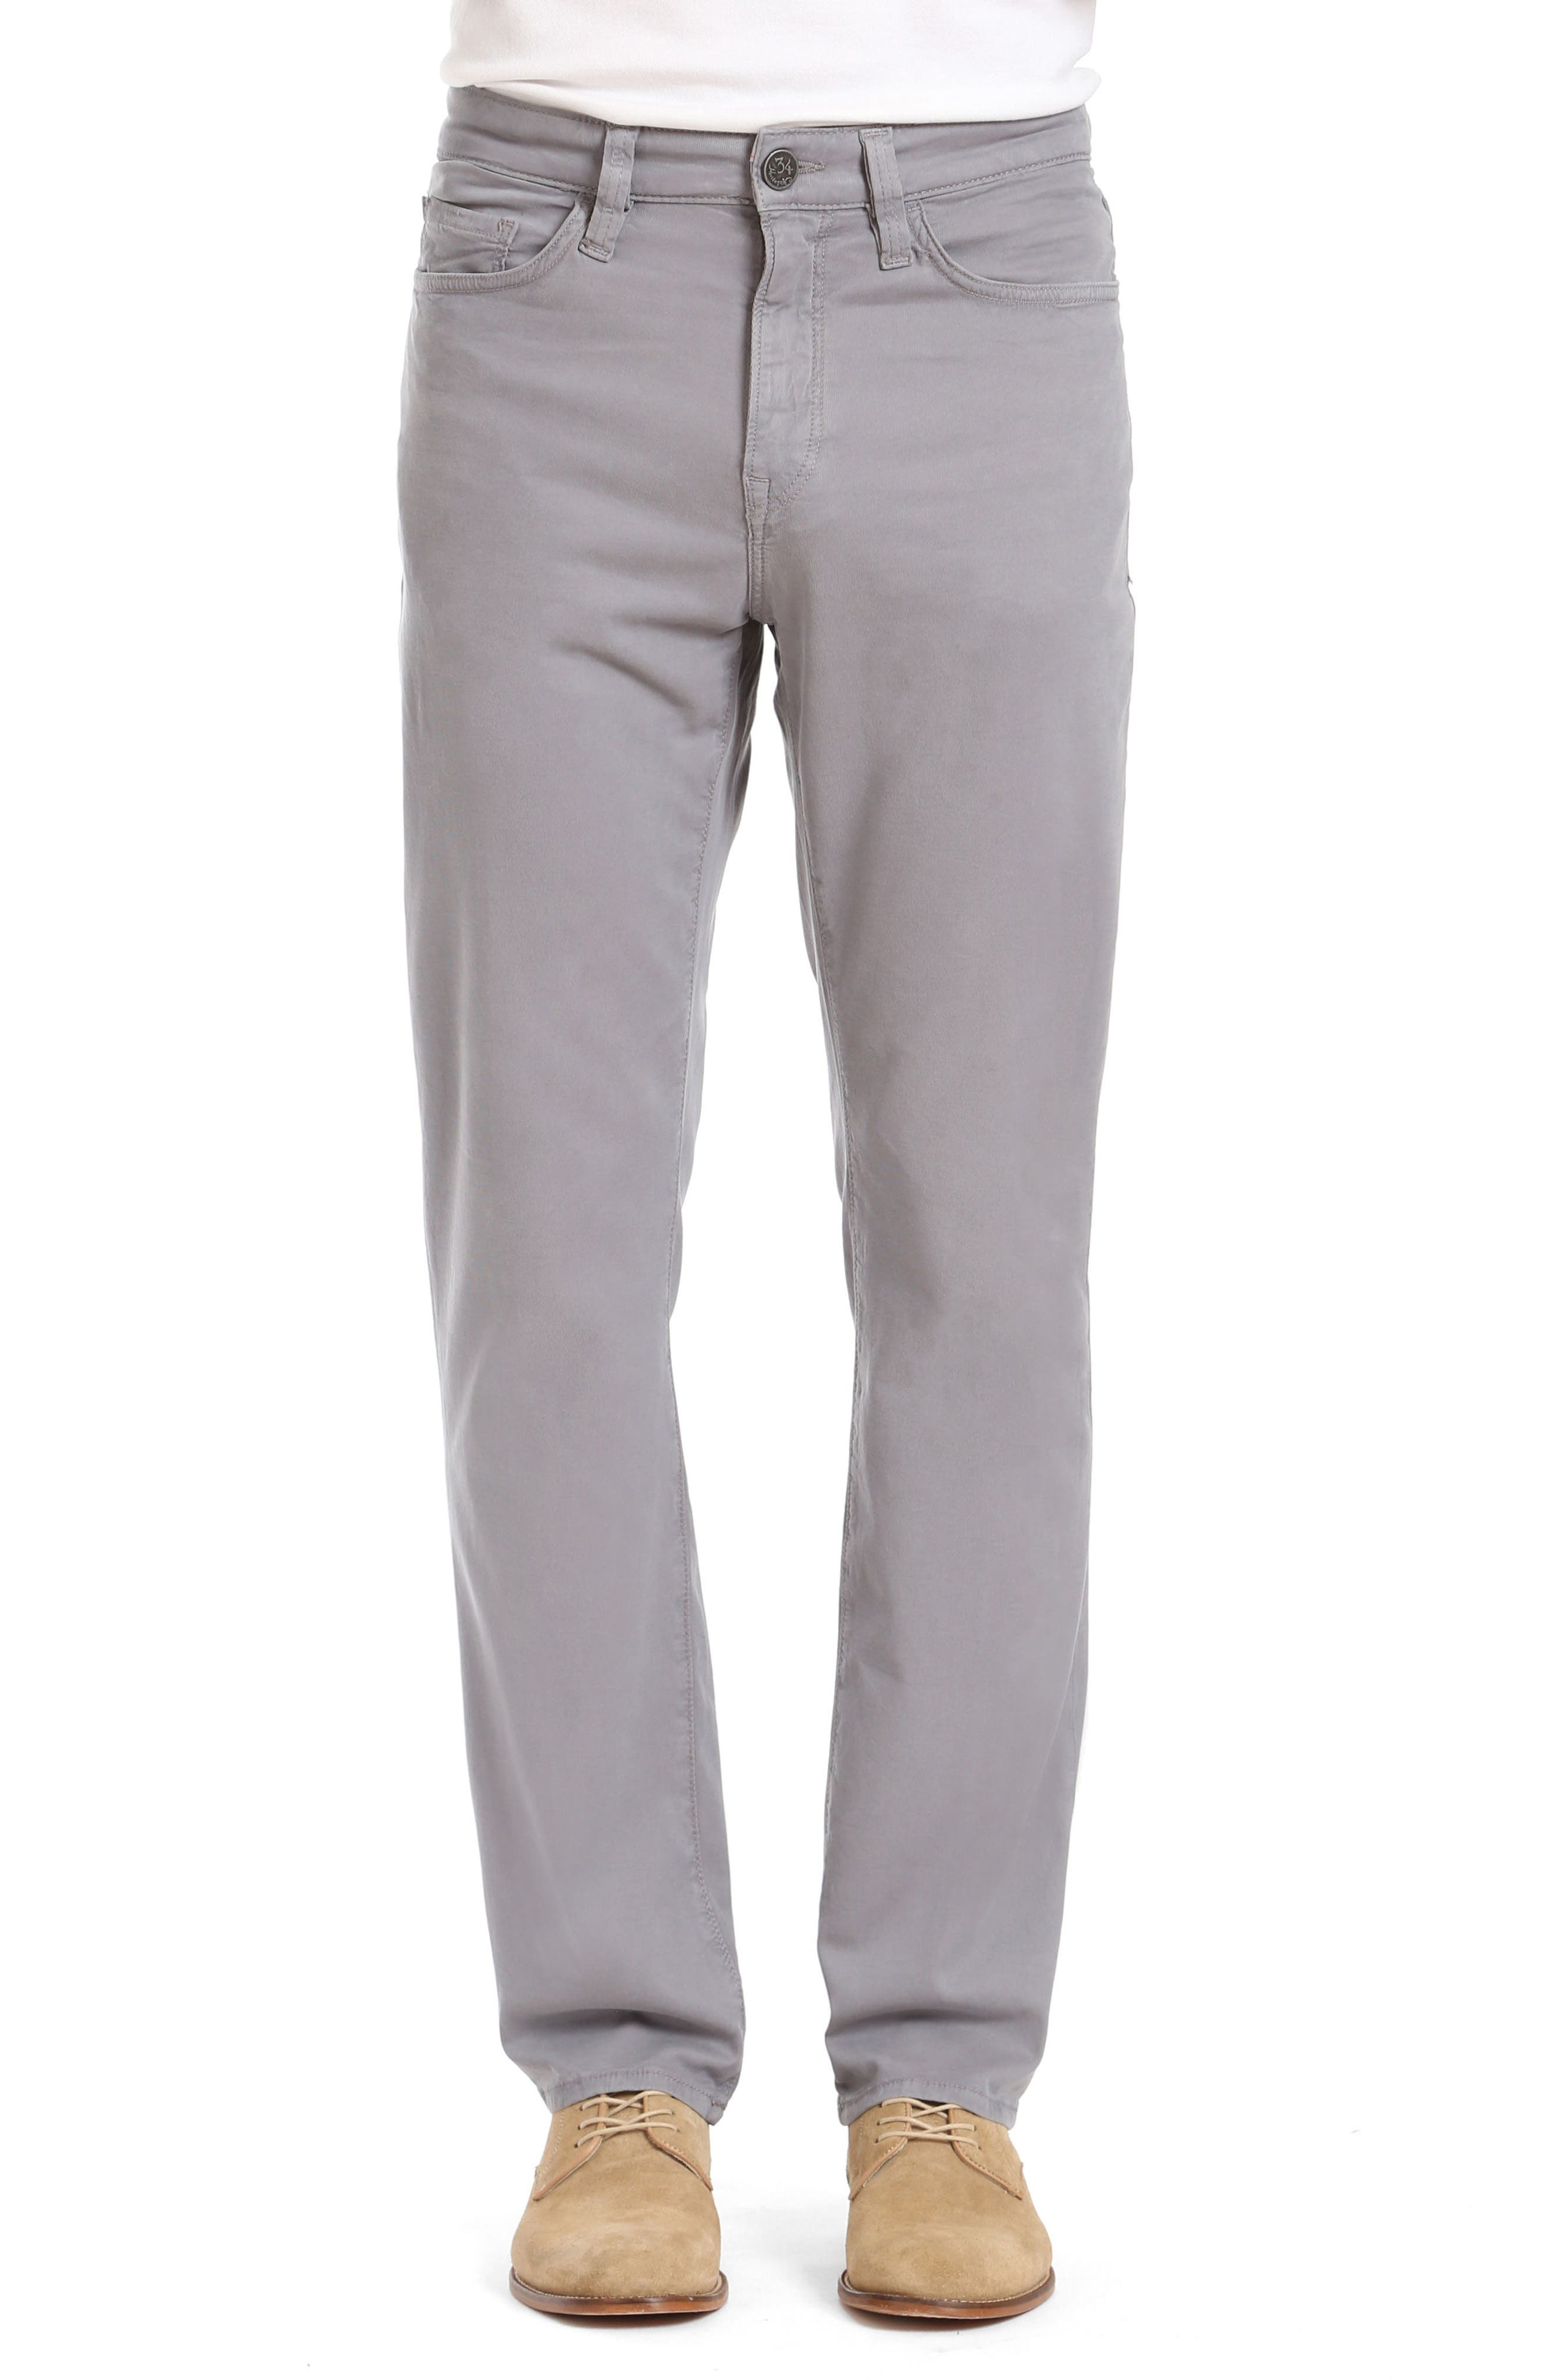 Charisma Relaxed Fit Twill Pants,                         Main,                         color, Grey Fine Twill